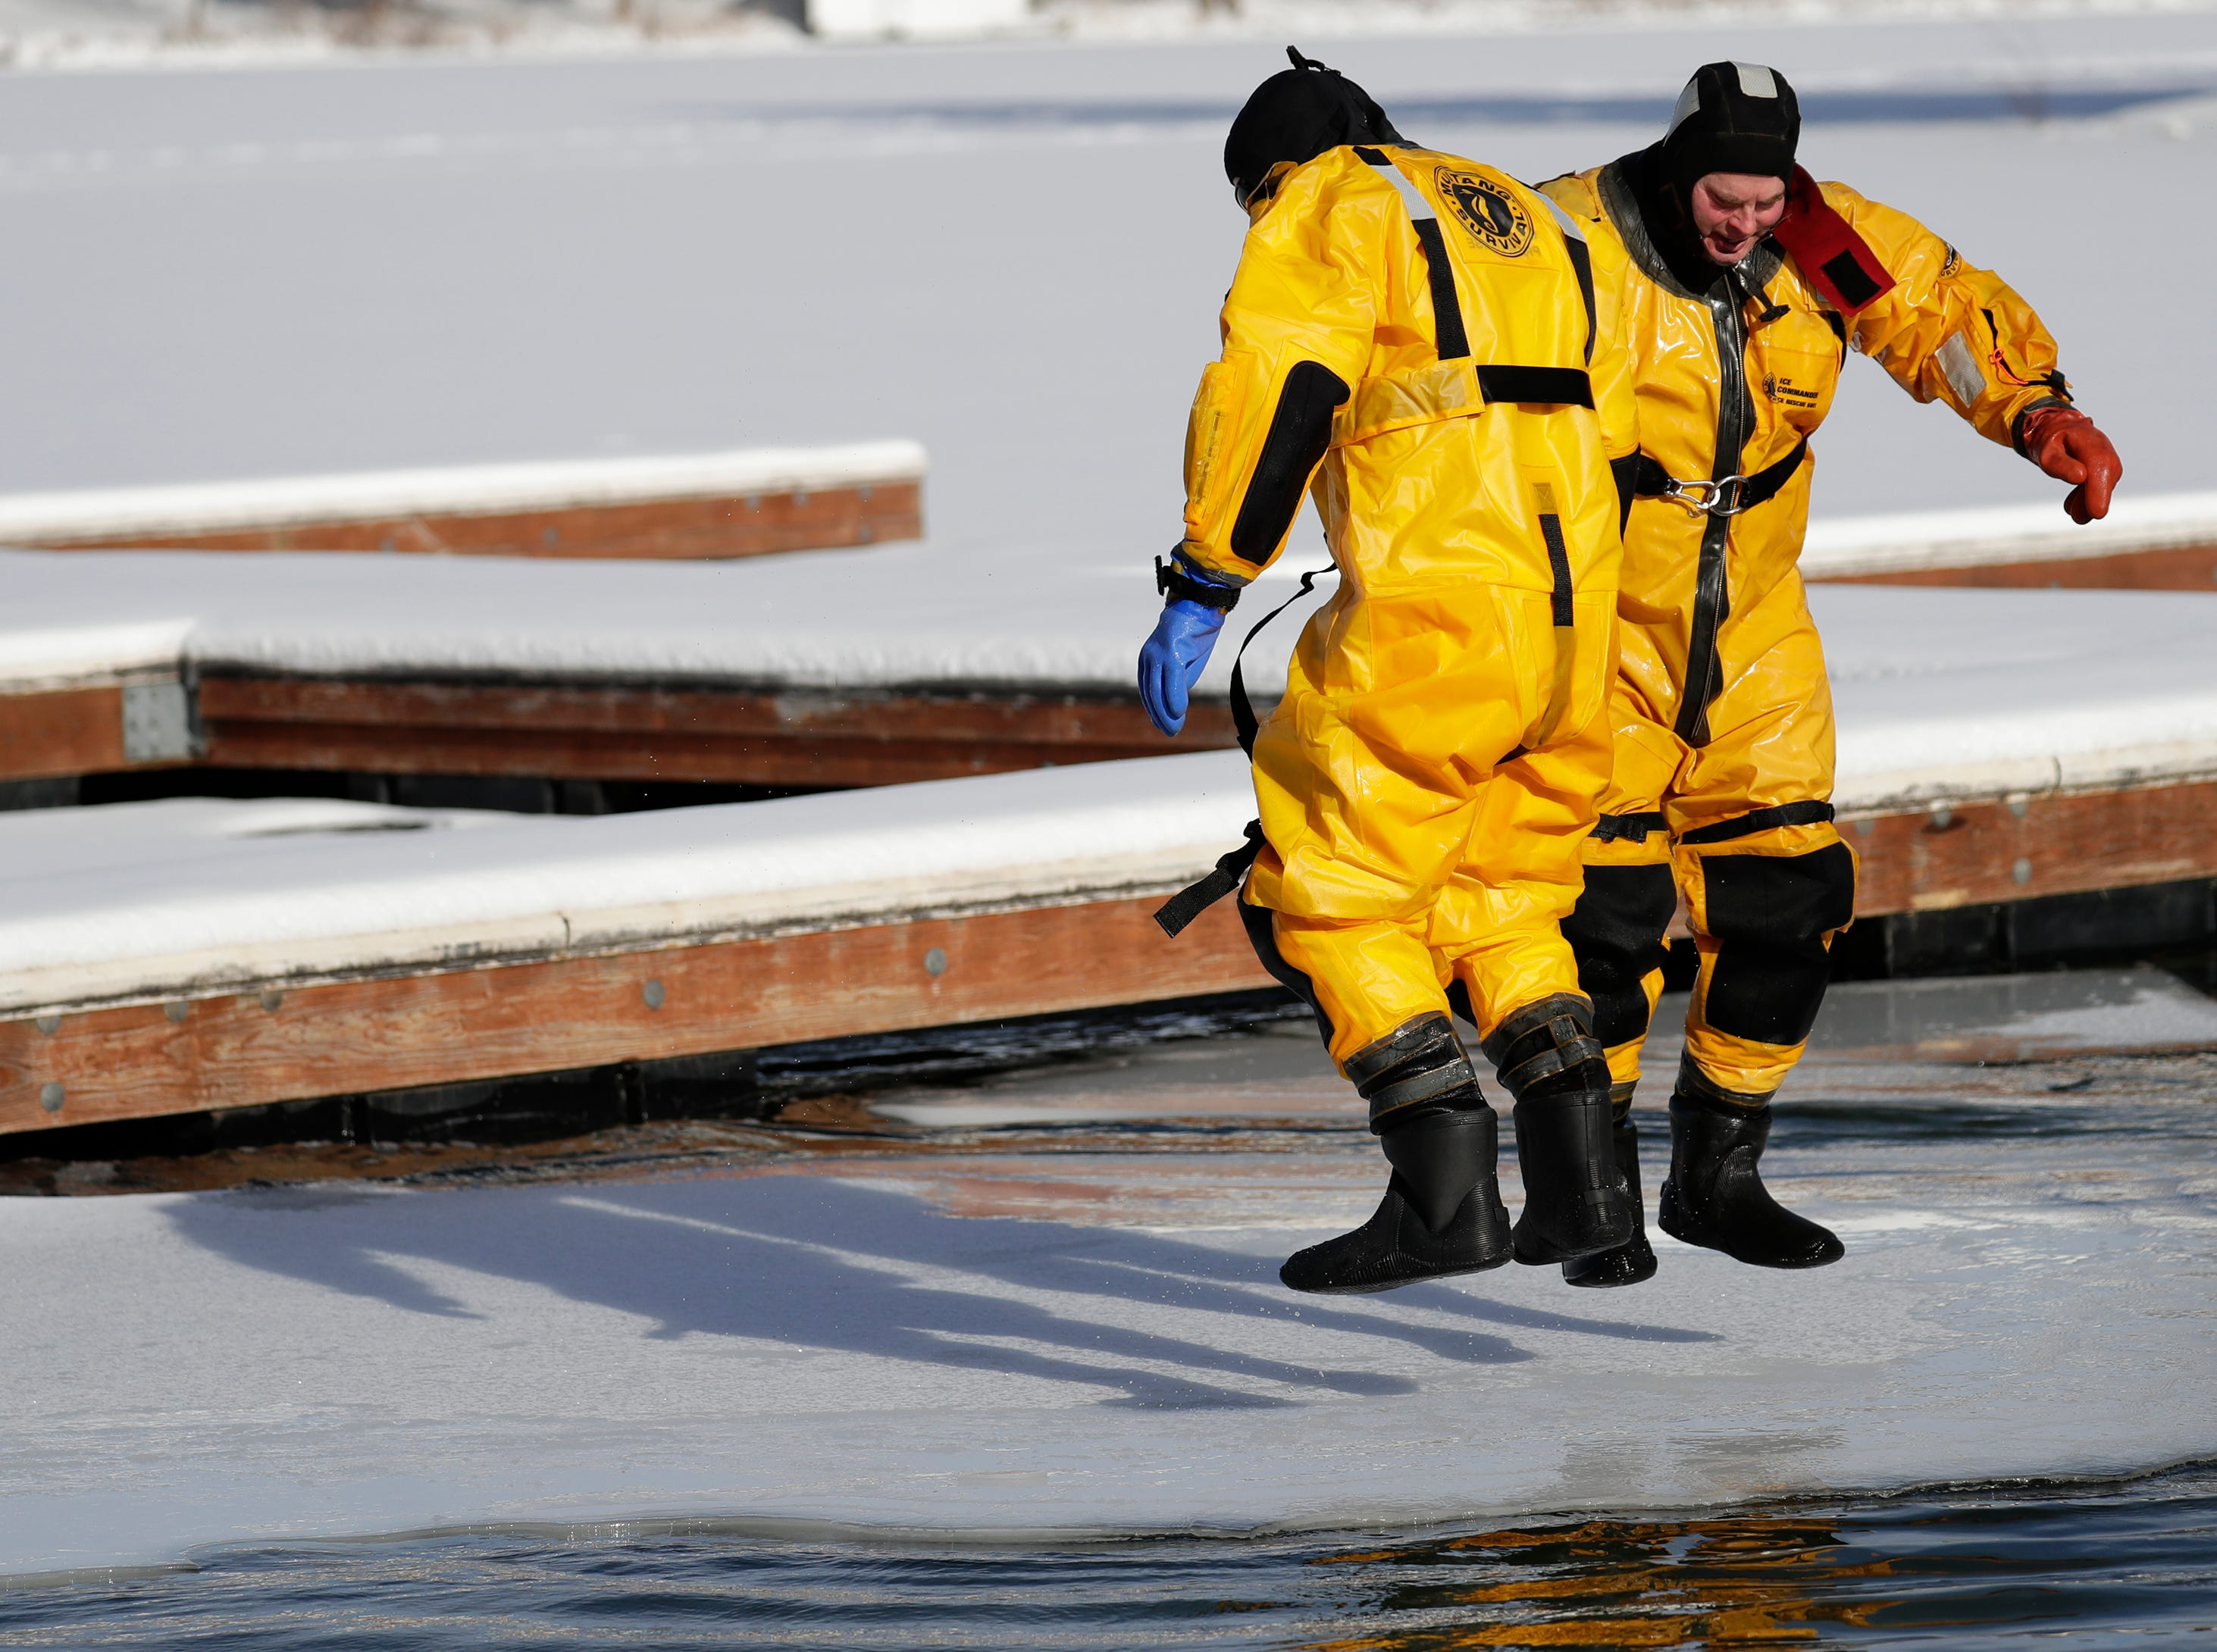 Waupaca firefighter Scott Obremski, left, and Lt. Pete Jungers jump up and down trying to break off the edge of the ice during the Polar Bear Plunge Tuesday, January 1, 2019, at Becker Marine on Lime Kiln Lake in Waupaca, Wis. Dan Powers/USA TODAY NETWORK-Wisconsin